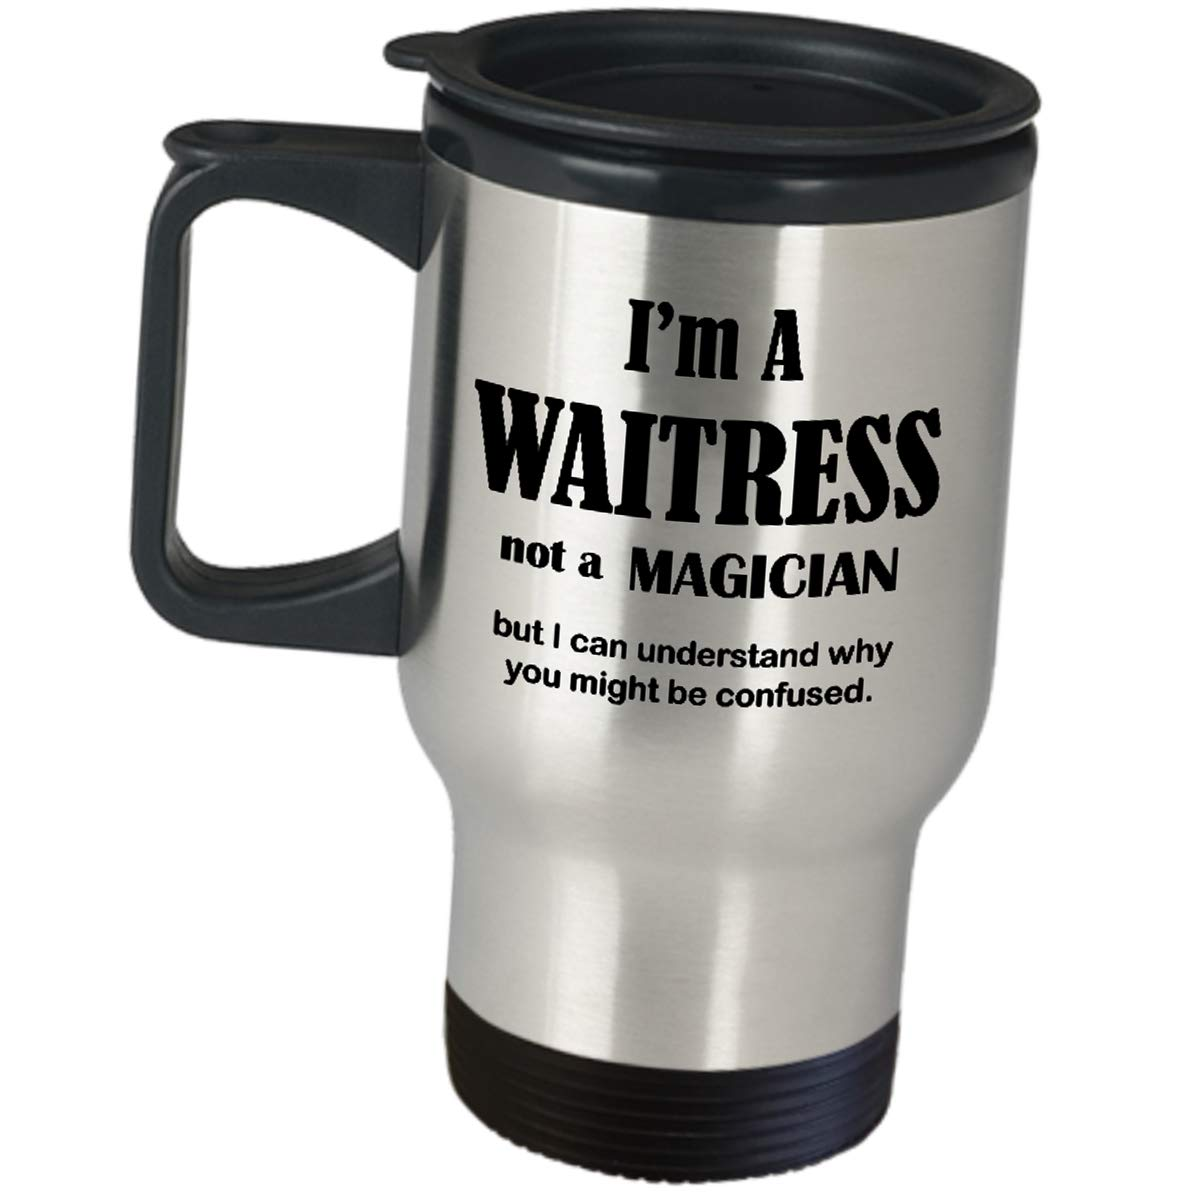 Funny Cute Gag Gifts for Waitress - I Am Not A Magician - Appreciation For Women Server Travel Mug Stainless Steel Insulated Coffee Tumbler Restaurant Cafeteria Food Order Taker Fun Job Pride Gift